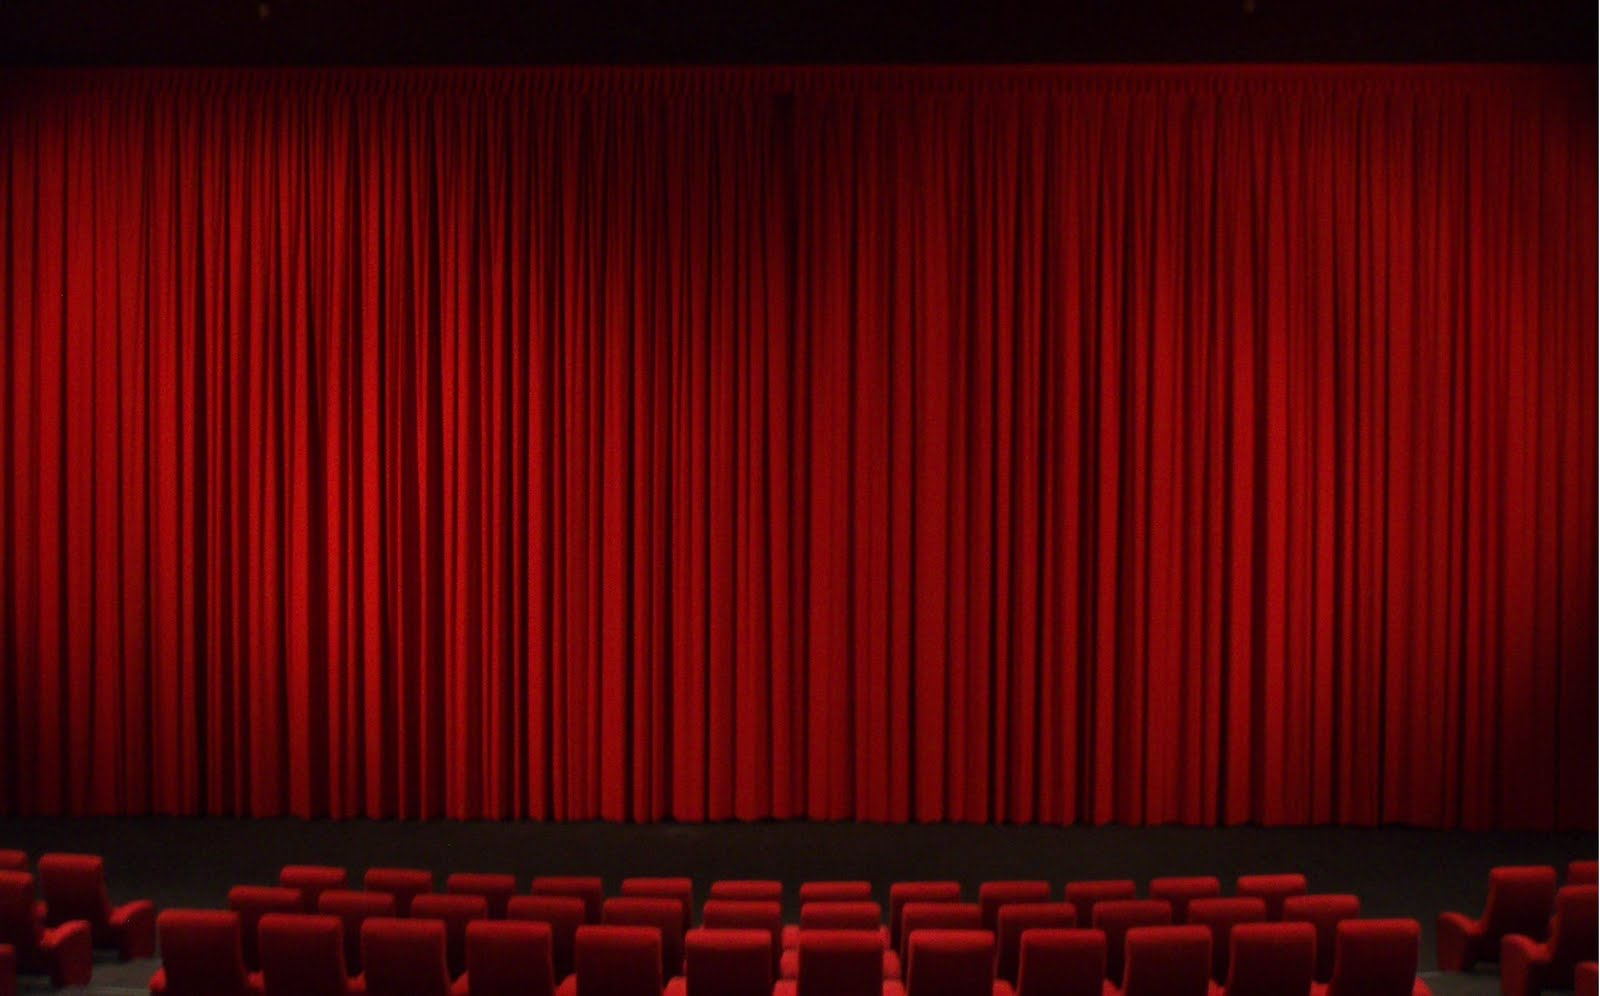 Red Velvet Theatre Curtains Swept to the Side Clipart Illustration